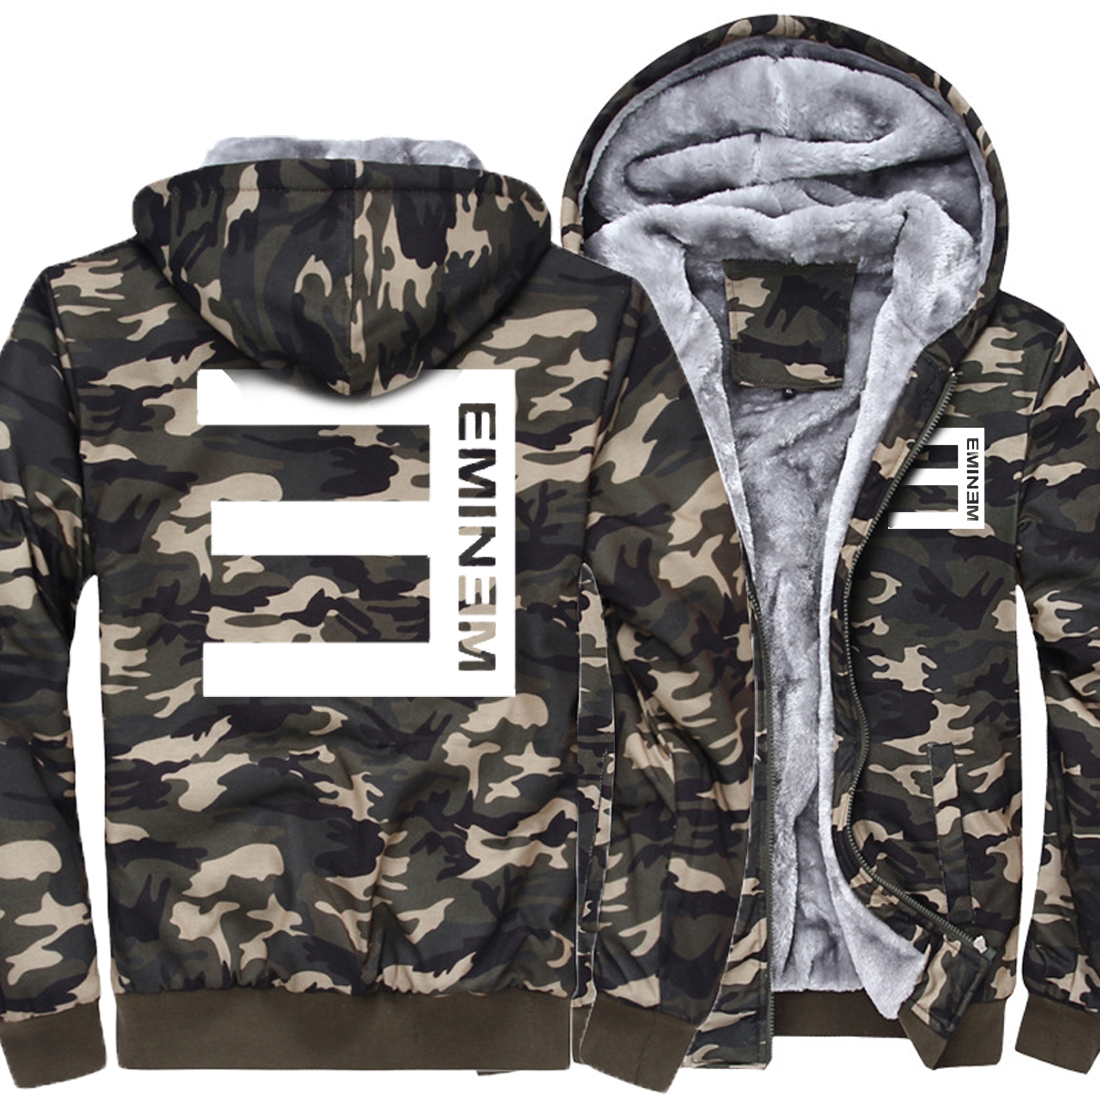 New Arrival Fashion Casual Camouflage Thick Hoodies Print Rapper E Men 2019 Winter Hipster Streetwear Hip Hop Style hoodie Kpop